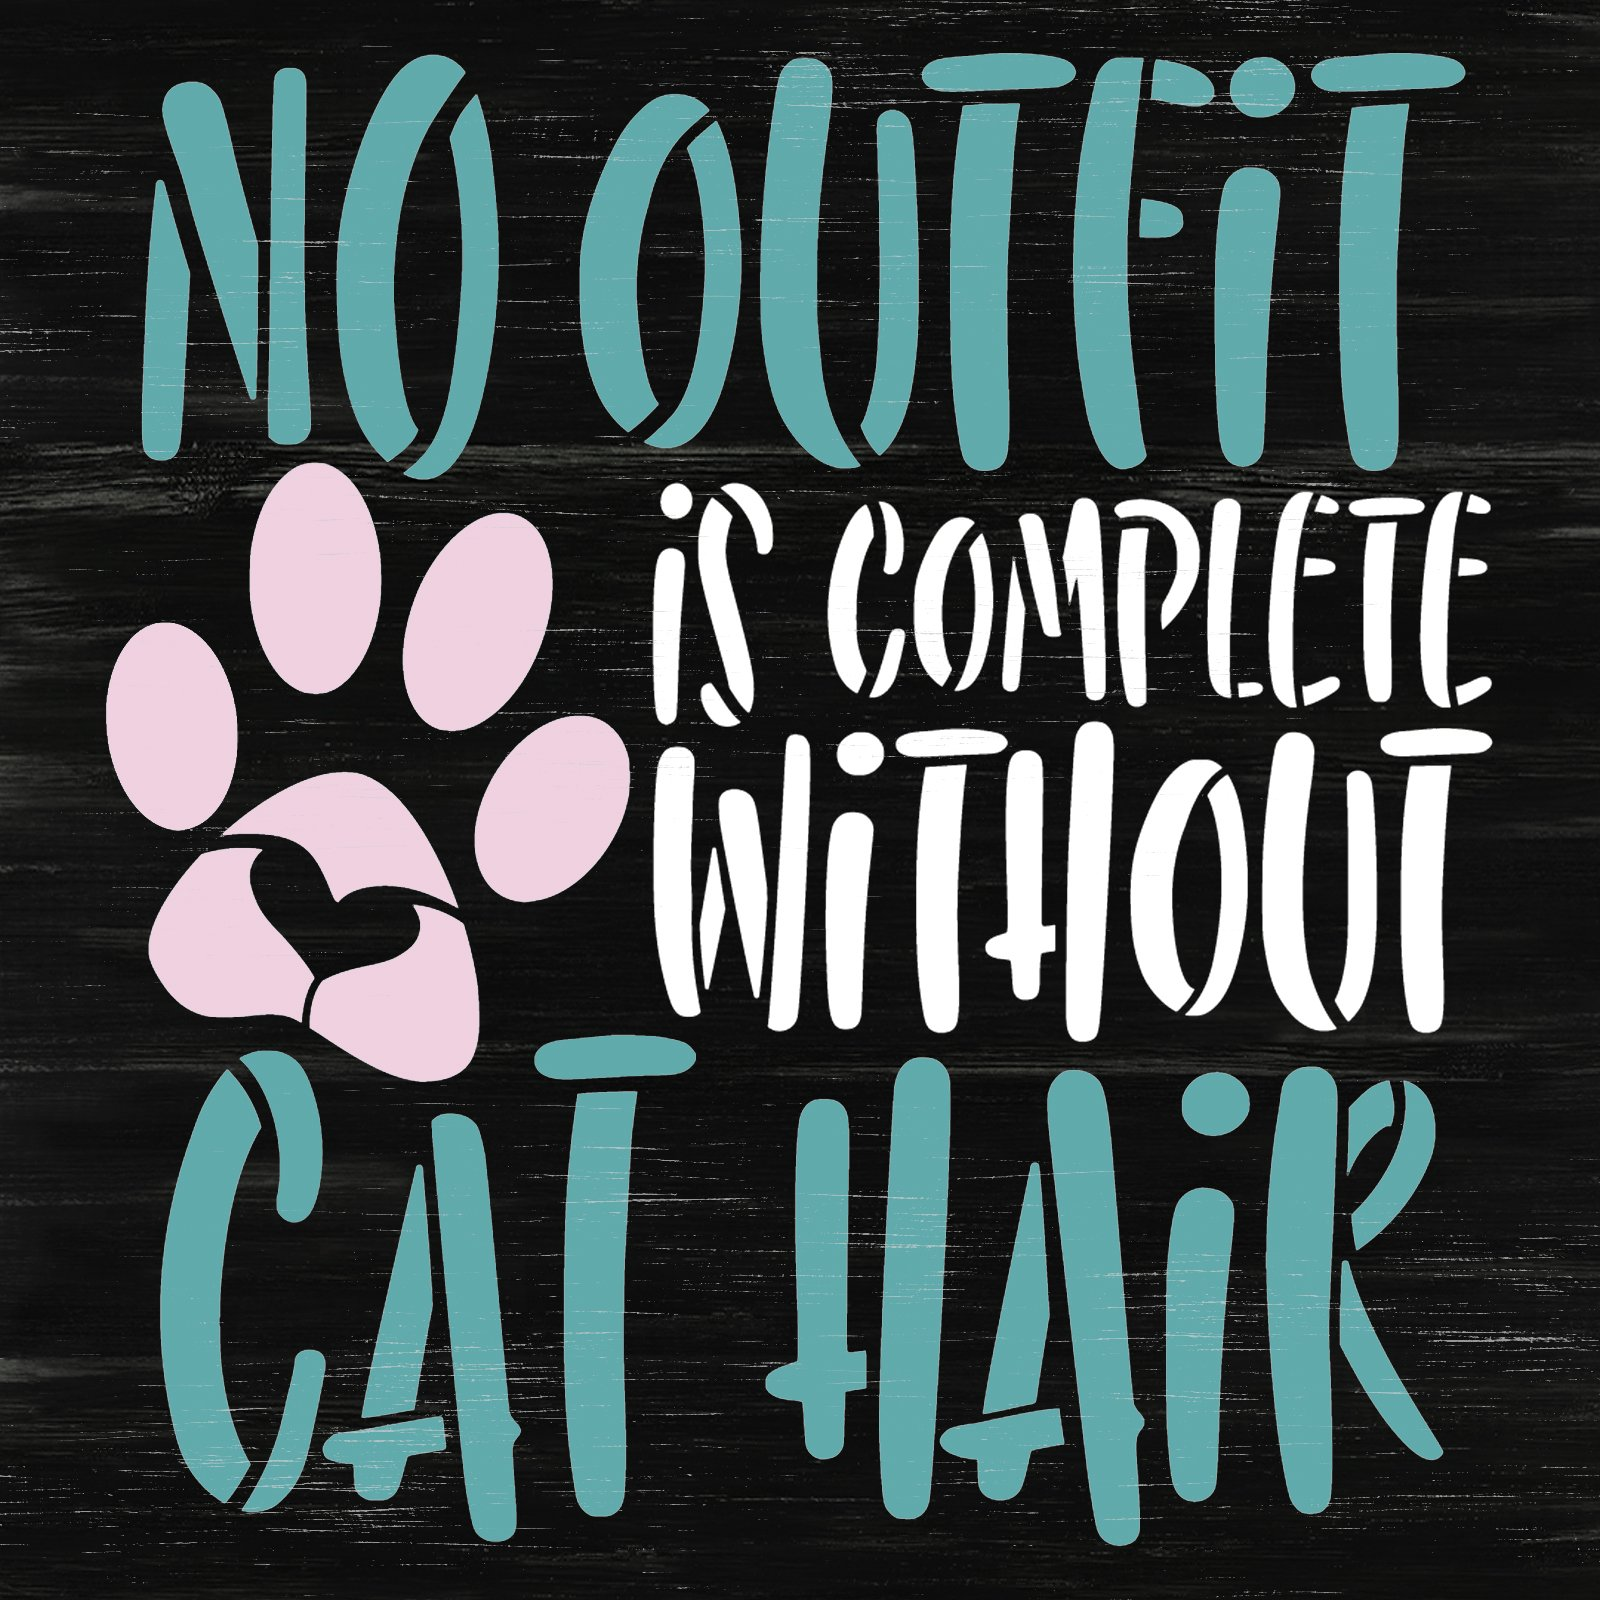 No Outfit Complete Without Cat Hair Stencil by StudioR12   Craft DIY Pawprint Heart Home Decor   Paint Wood Sign Reusable Template   Select Size